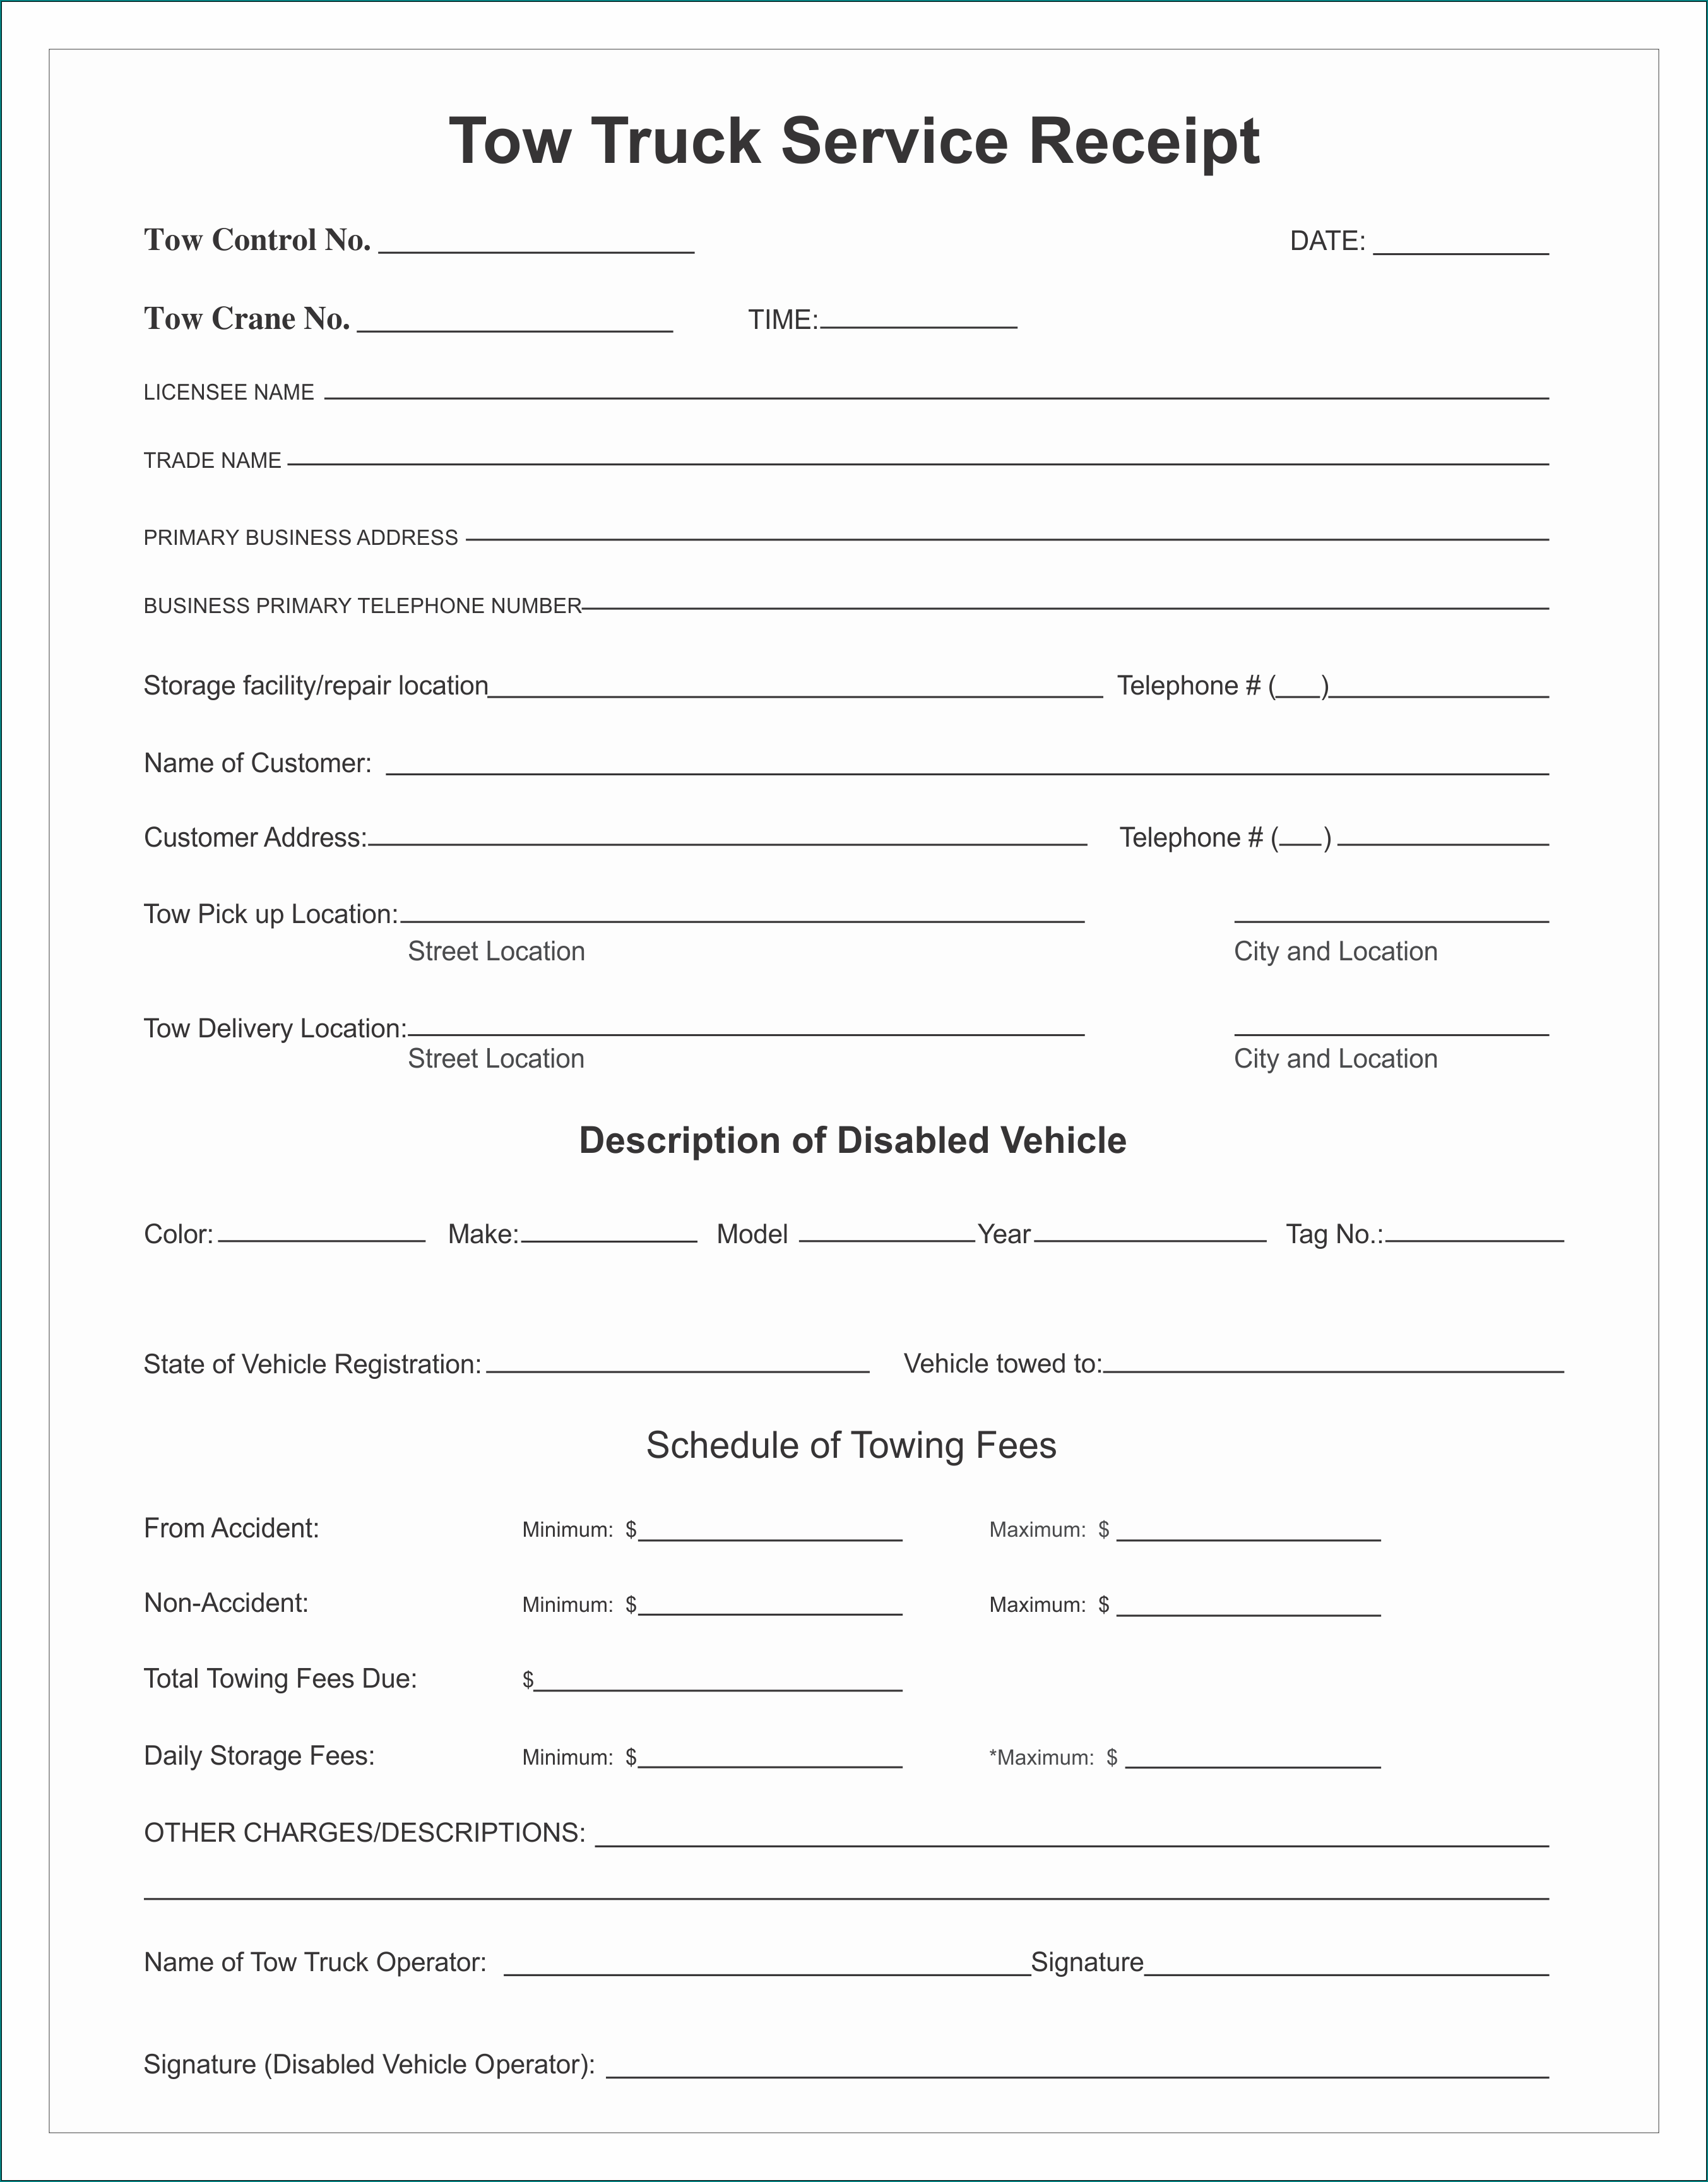 Sample of Towing Receipt Template